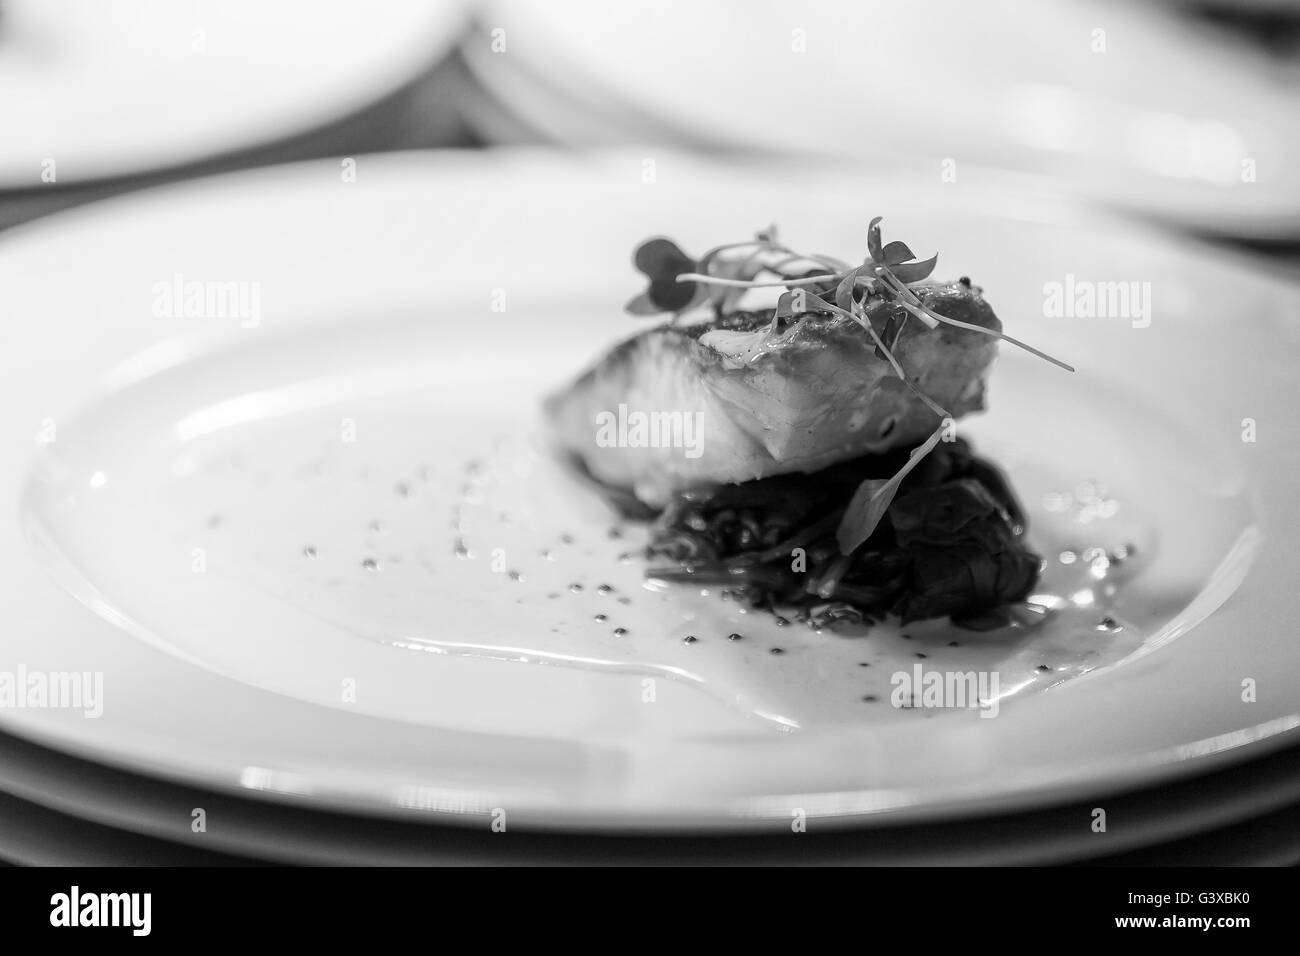 A chef prepared fish dish prepared for a wedding event. - Stock Image